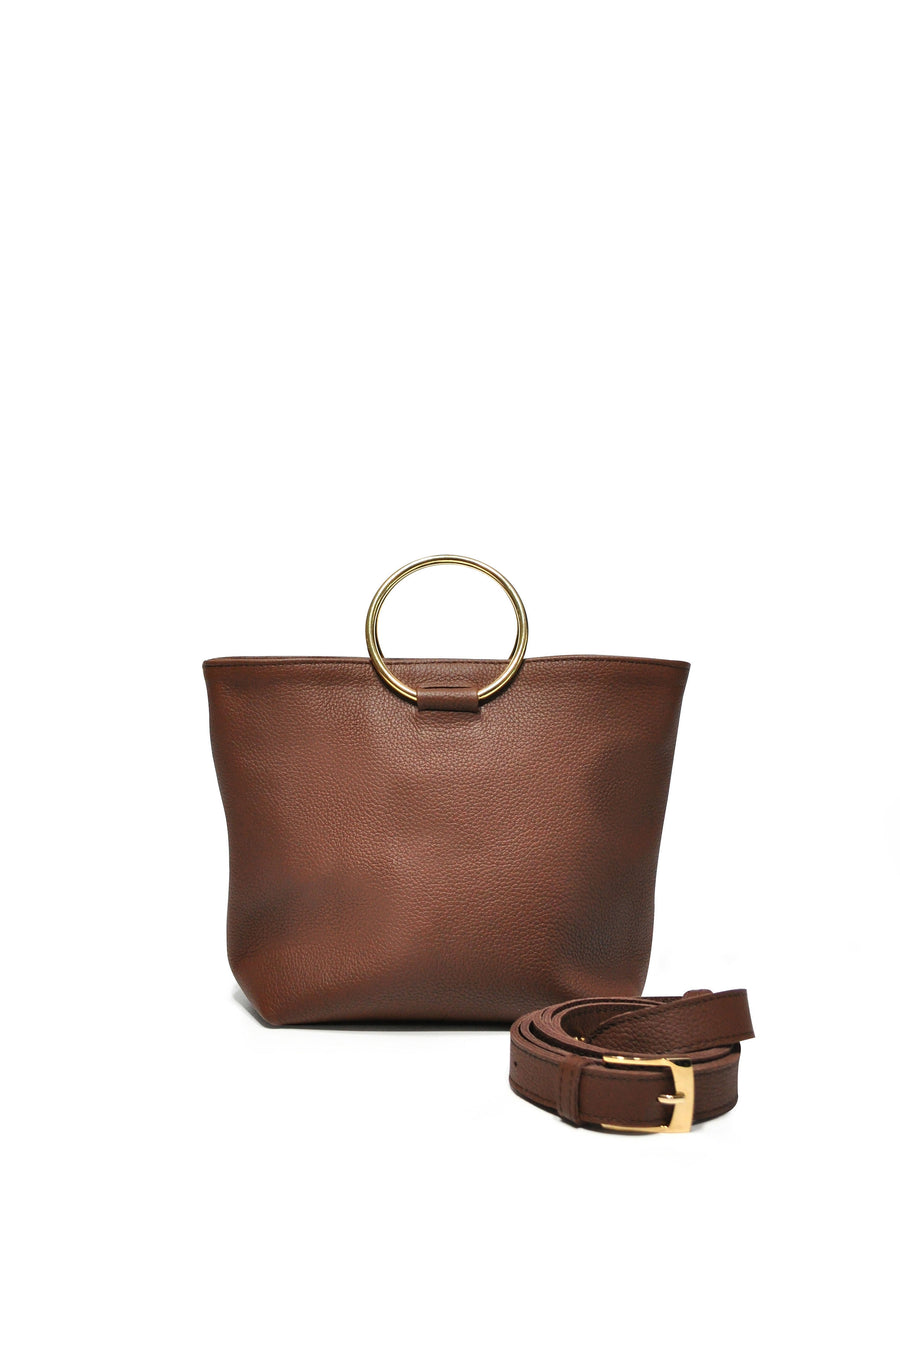 Mini Audrey Crossbody Brown Leather - Positive Elements